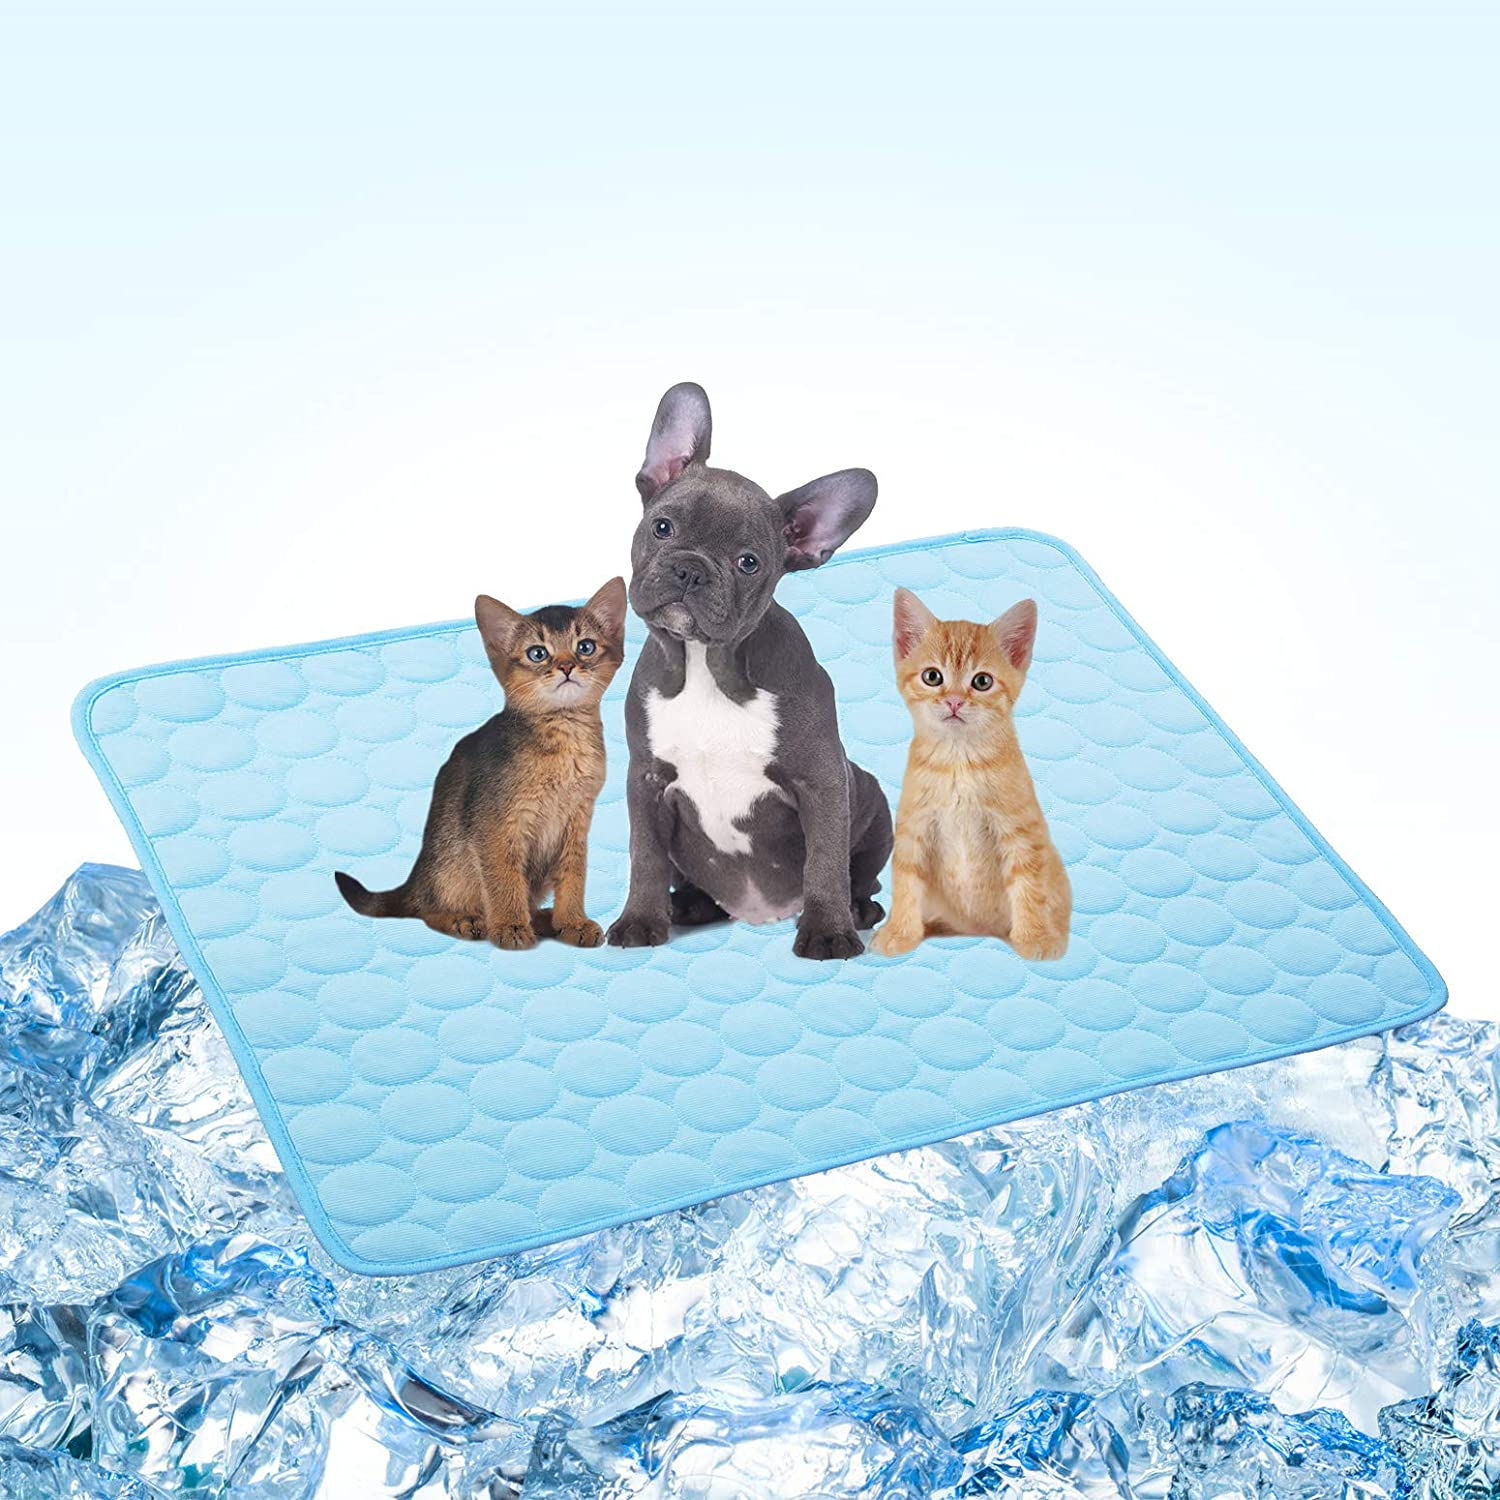 Dog Bed Mats Cat Bed Mats Pet Cooling Mats Dogs Cats Cooling Pad Cool Self Cooling Mat Pad for Kennels,Crates,Beds Avoid Overheating No Need to Freeze (28x40''/70x100cm, Blue)